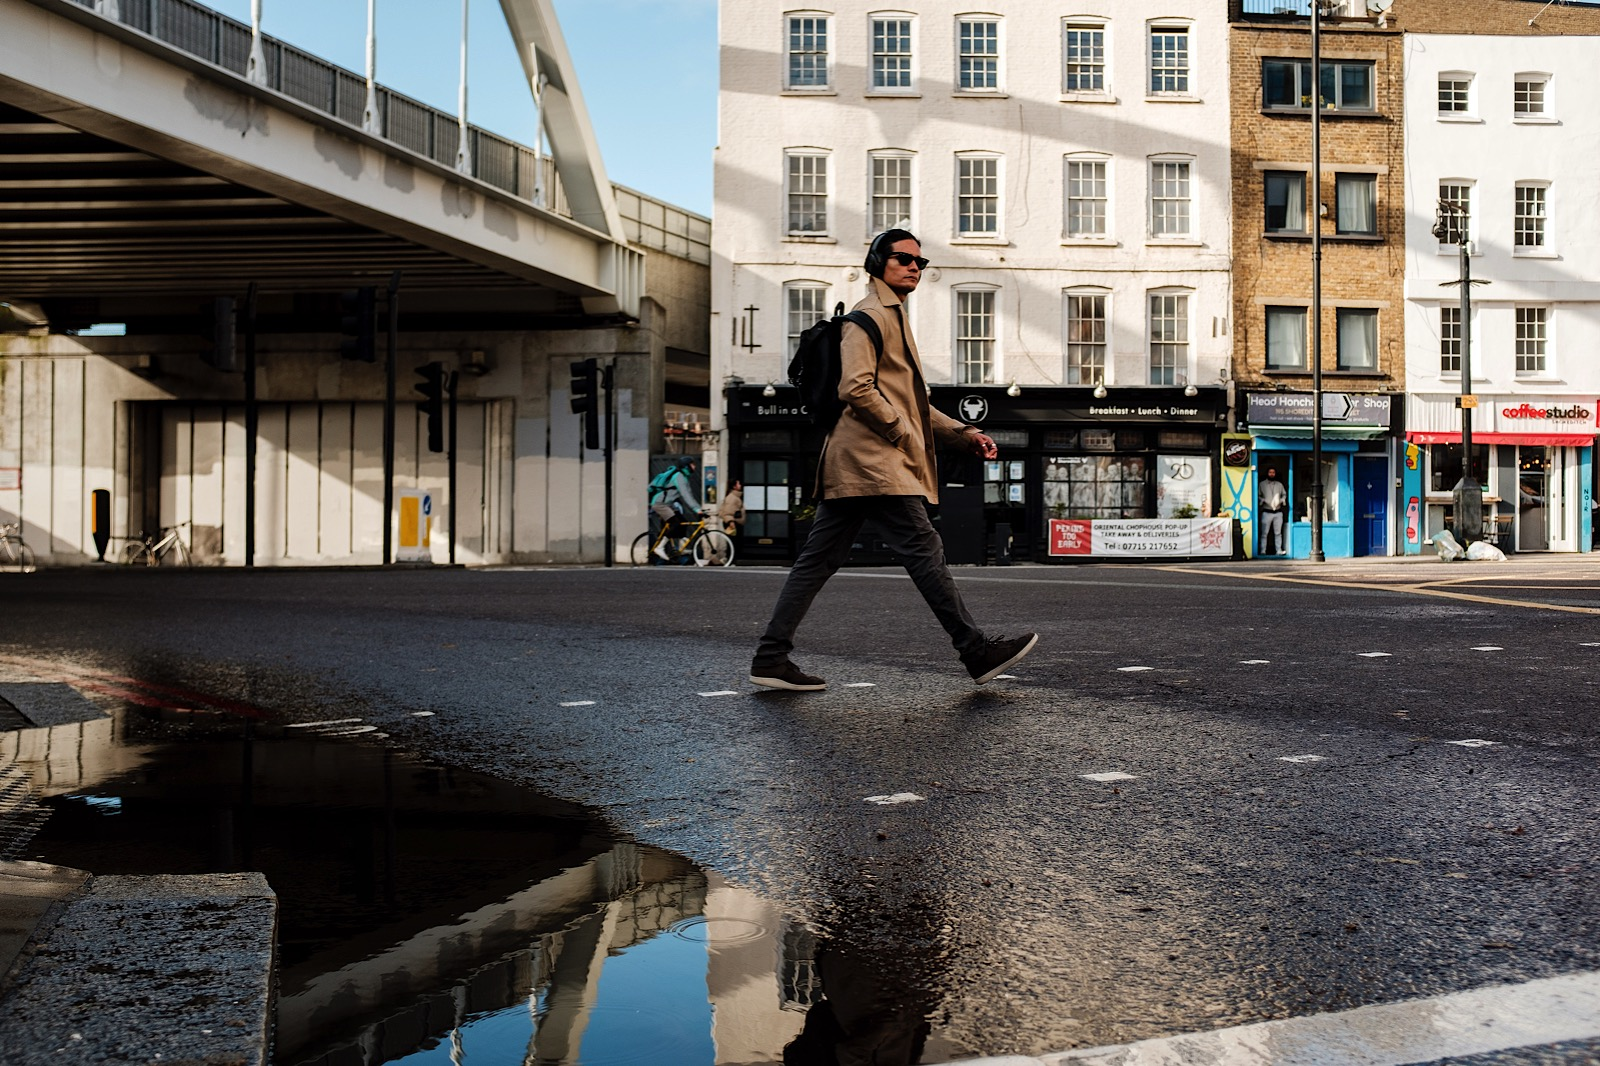 Man with headphones and sunglasses crossing road in central London